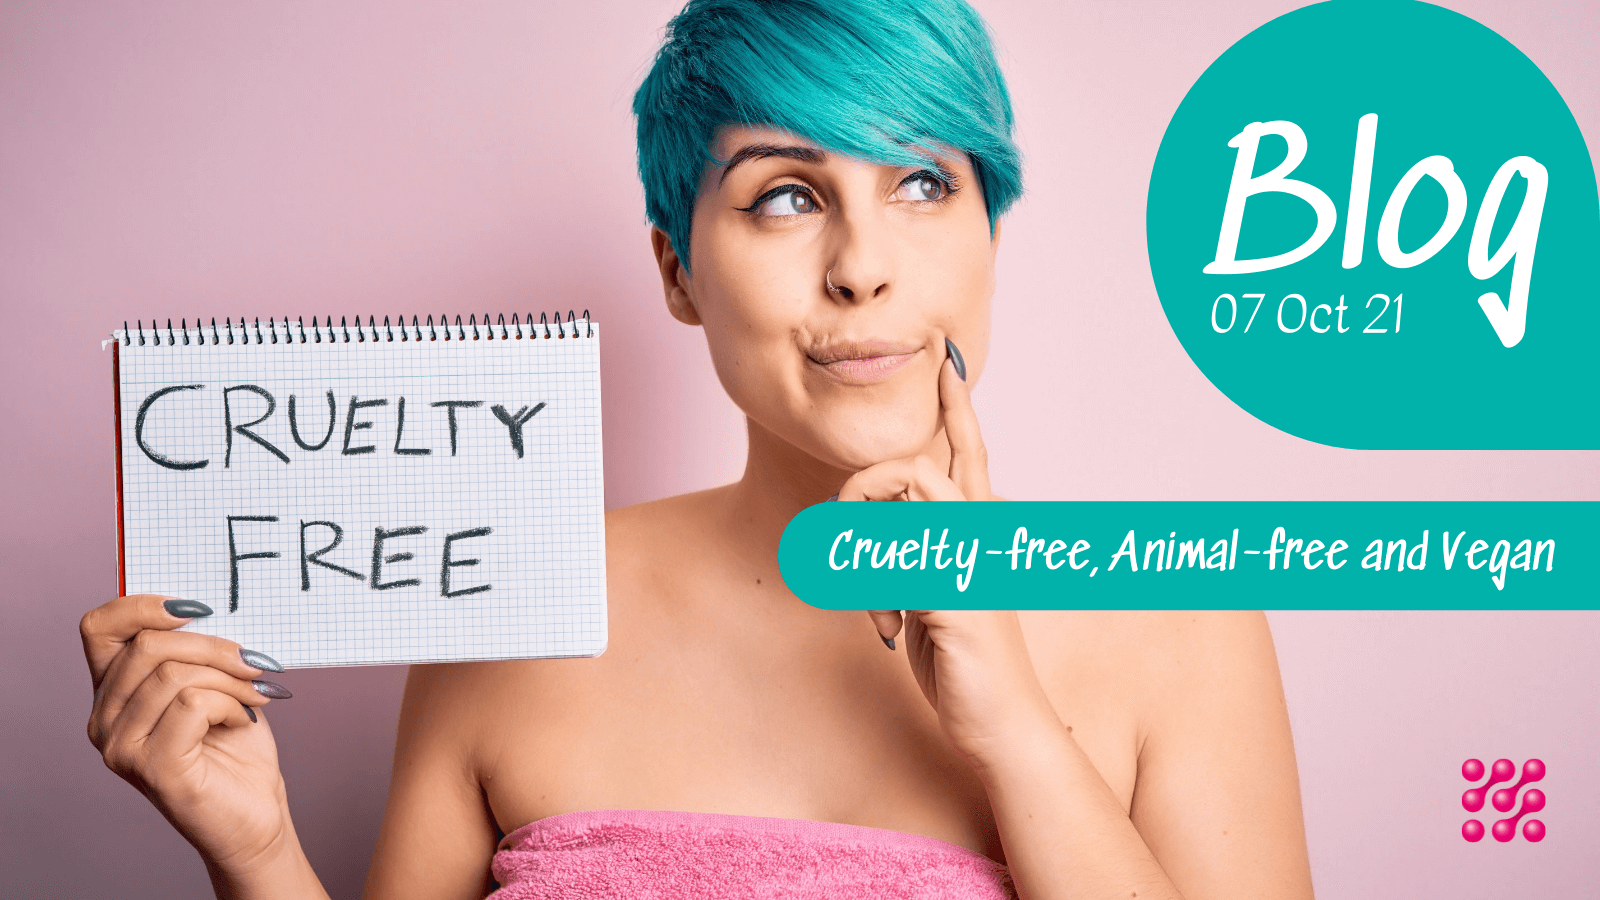 Claims in Cosmetics: Cruelty-free, Animal-free and Vegan